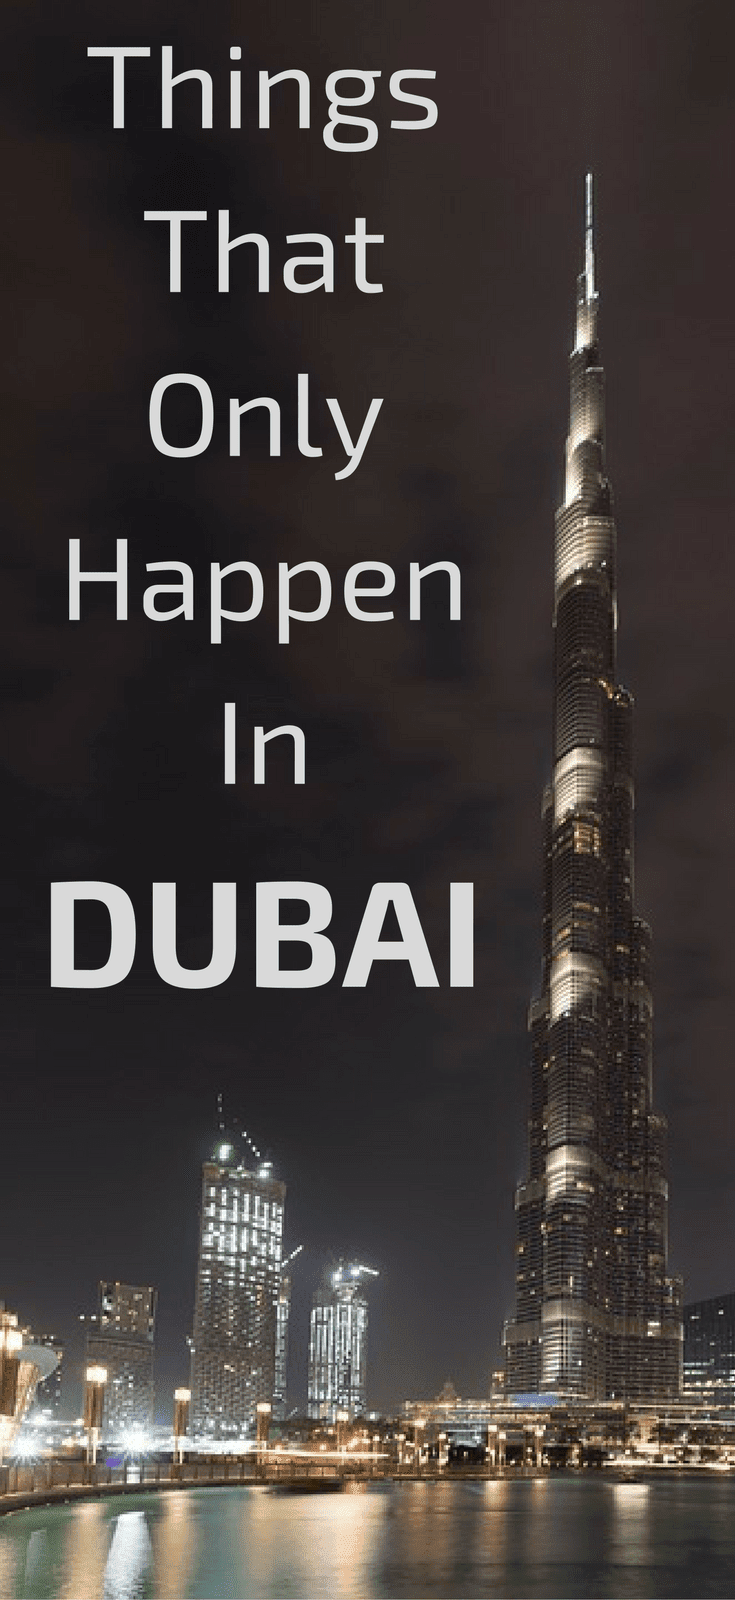 Things That Only Happen In Dubai